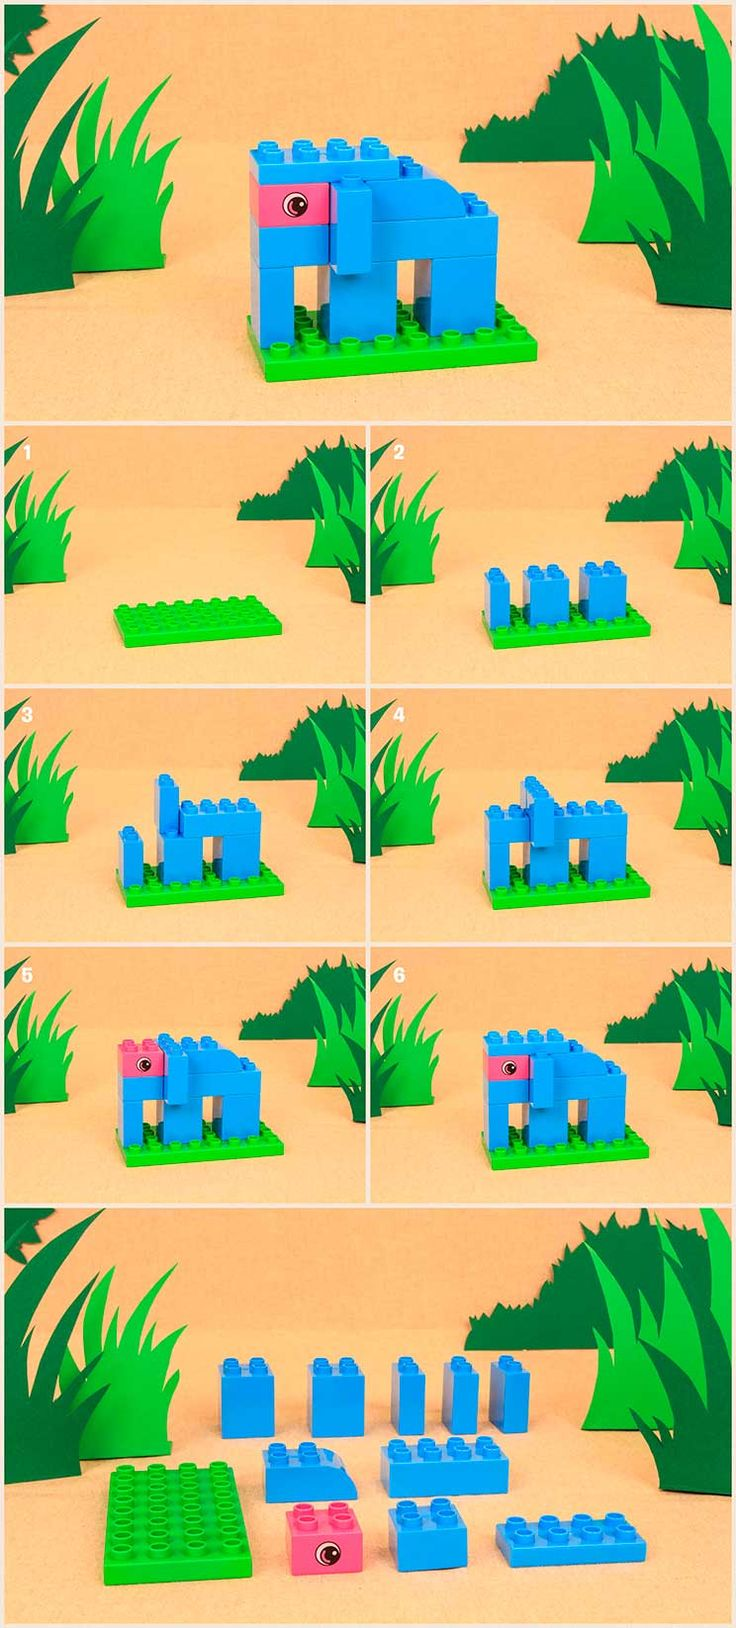 How to build an elephant - Articles - Family LEGO.com